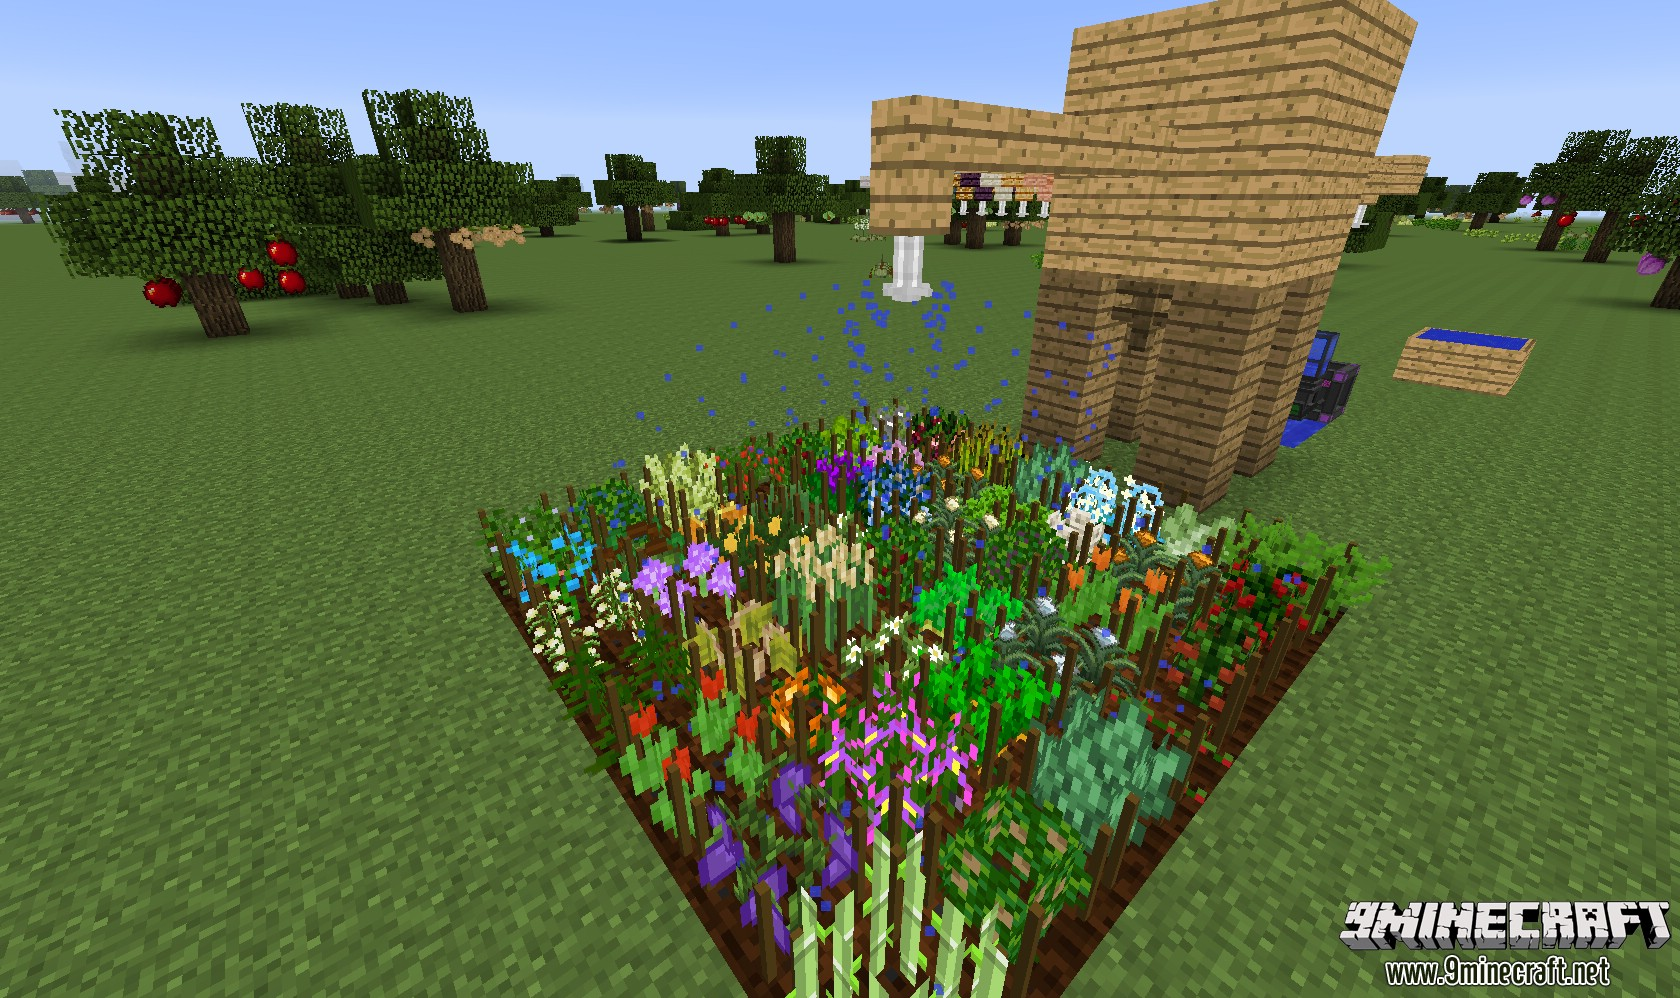 1485208633_571_agricraft-mod-1-10-21-7-10-agriculture-in-minecraft AgriCraft Mod 1.10.2/1.7.10 (Agriculture in Minecraft)